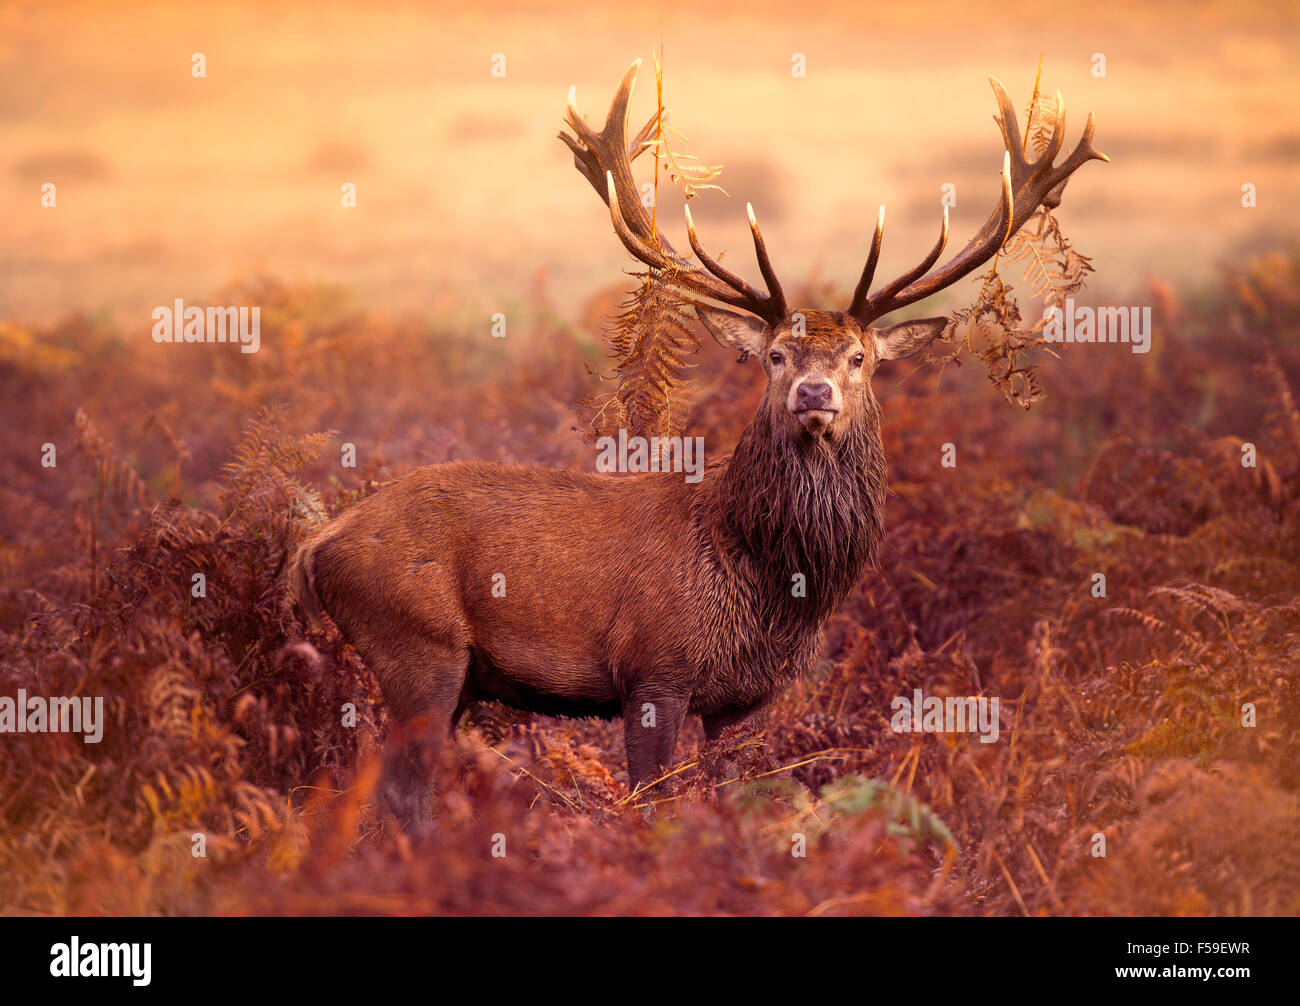 Red Deer Stag in the early morning mist - Stock Image